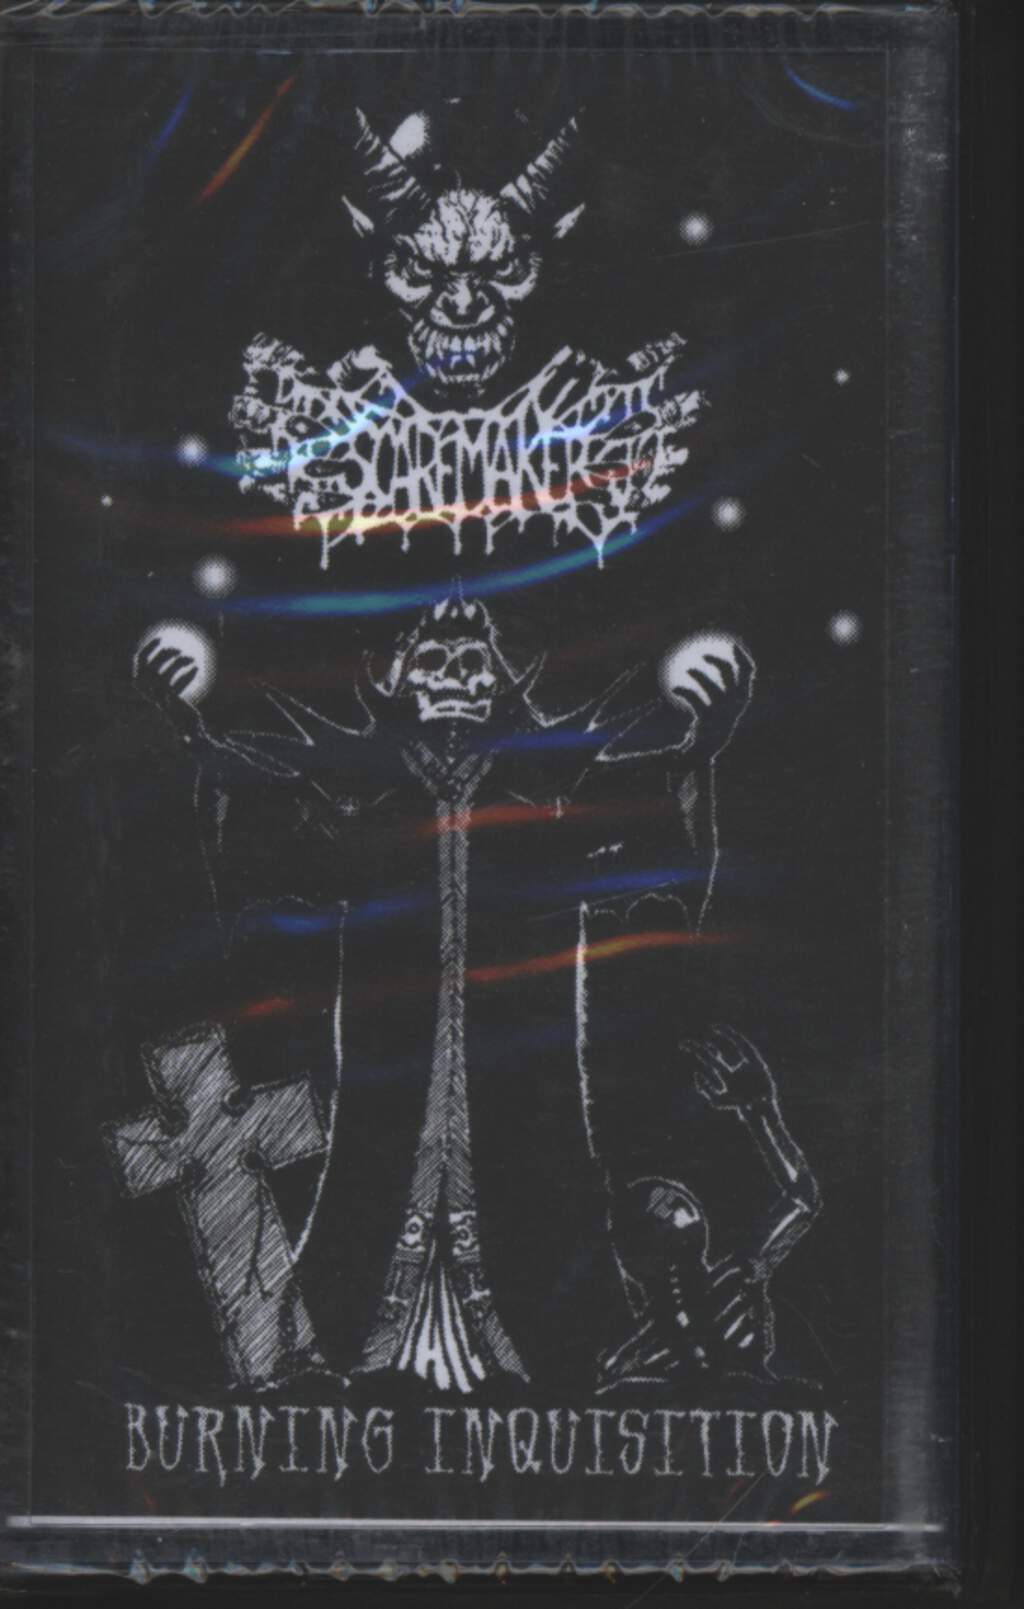 Scaremaker: Burning Inquisition, Compact Cassette